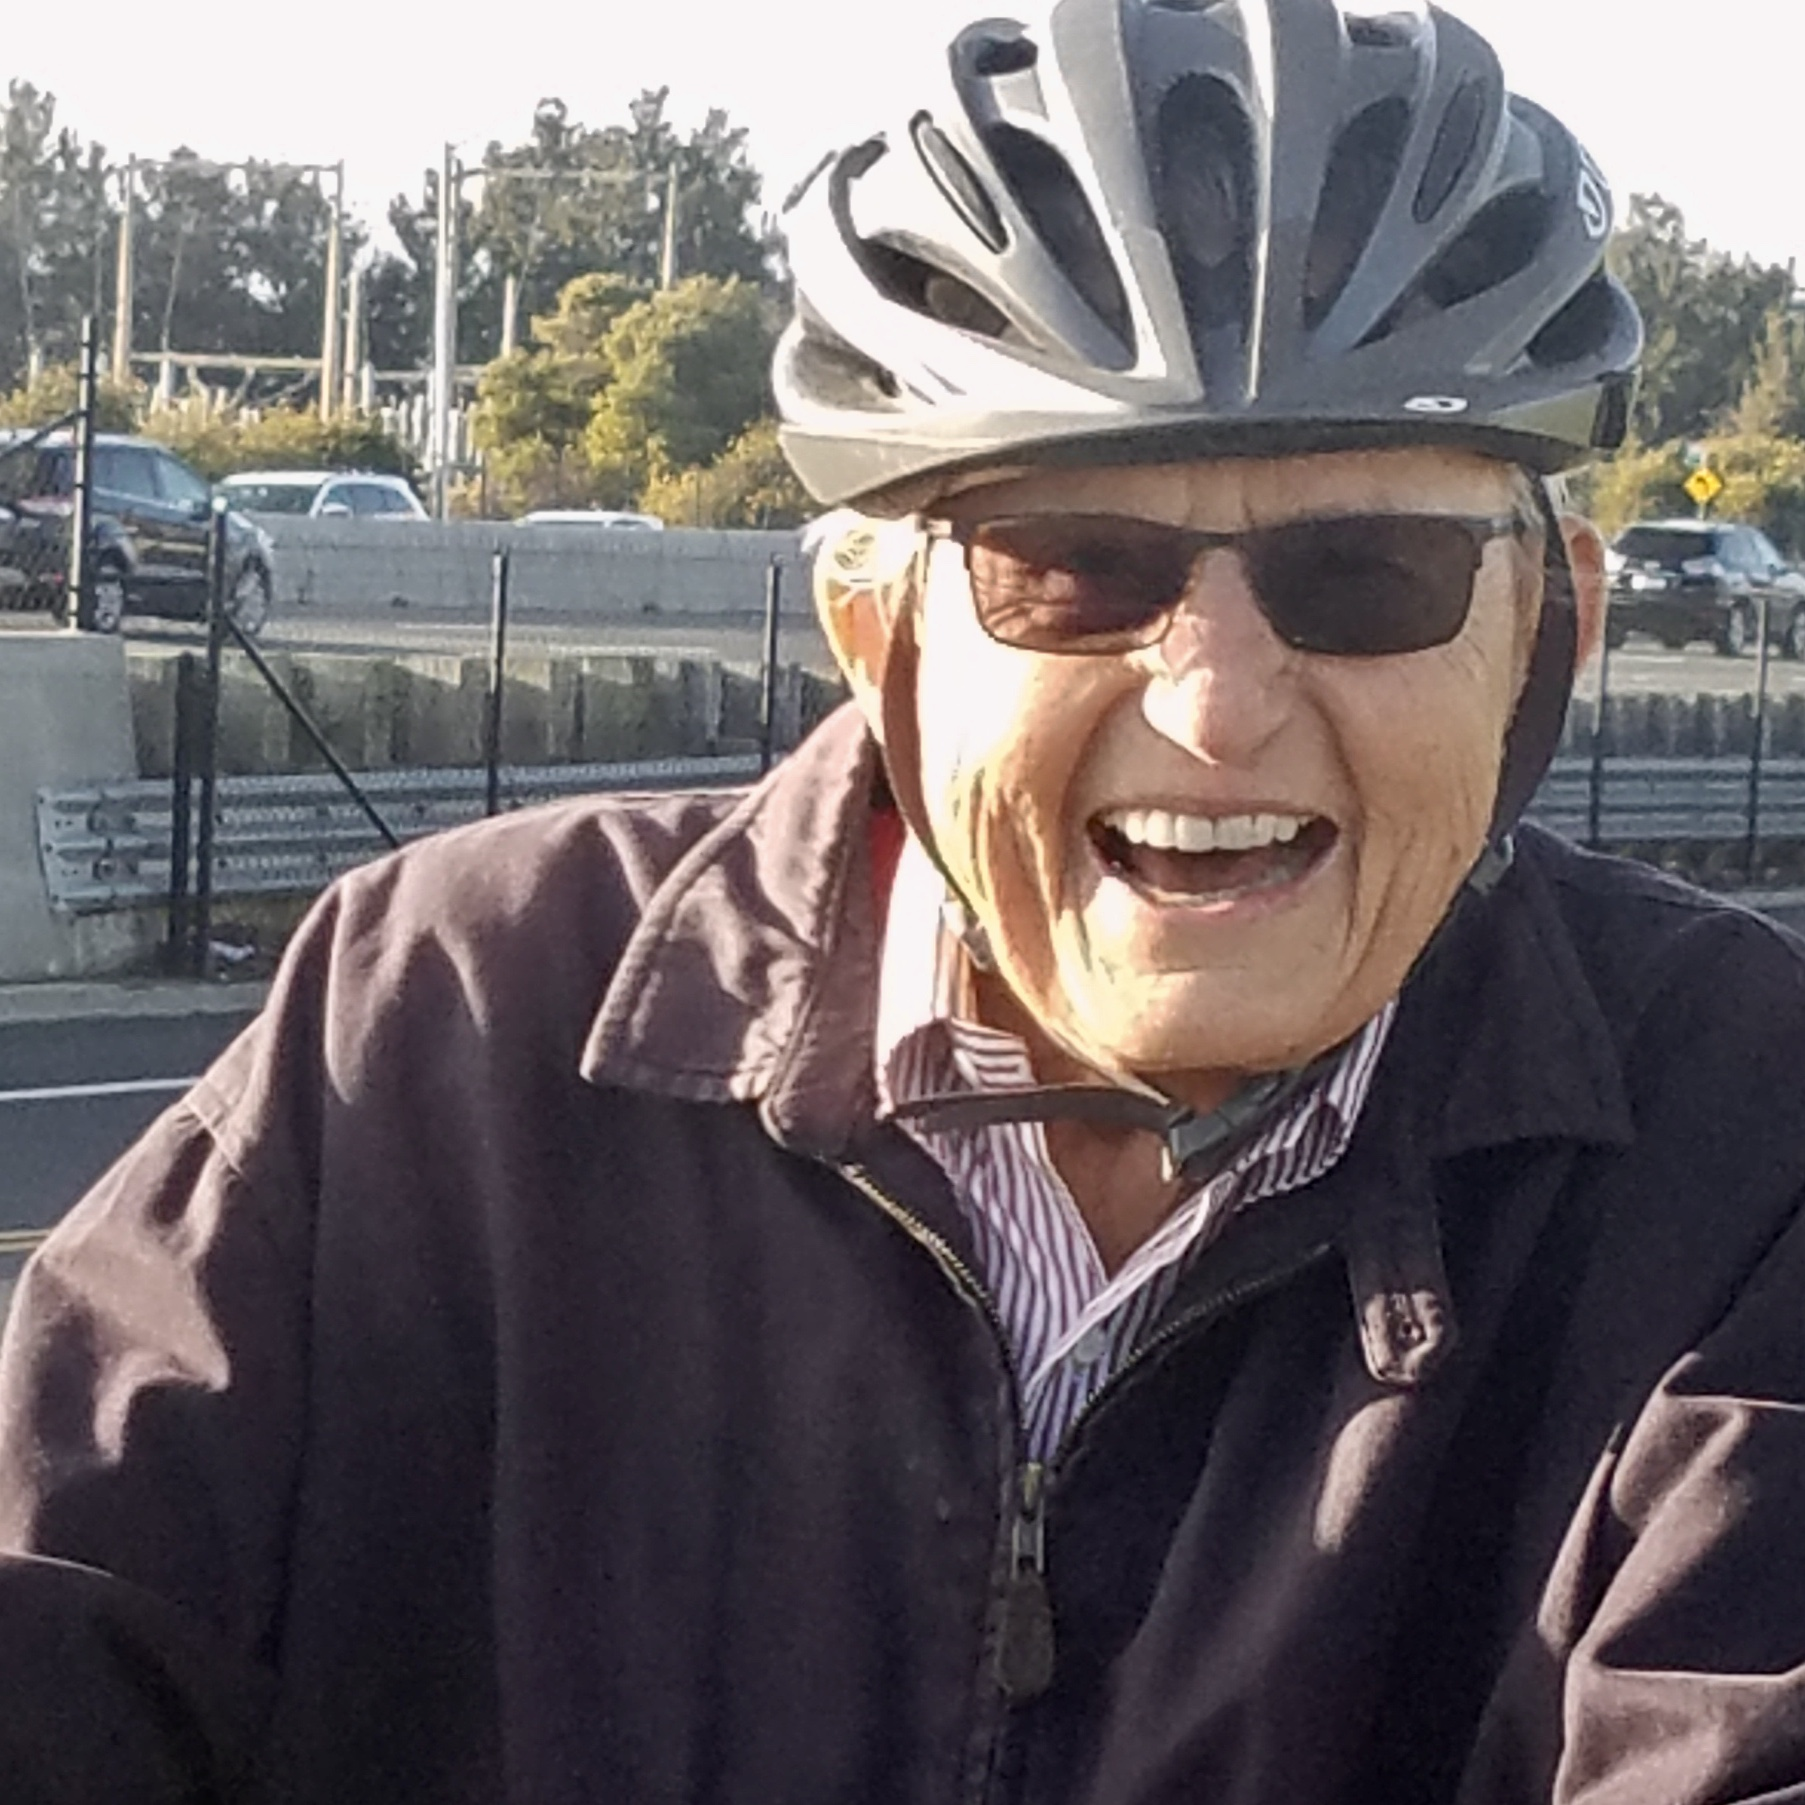 A good moment on the bike on my Dad's 100th birthday.